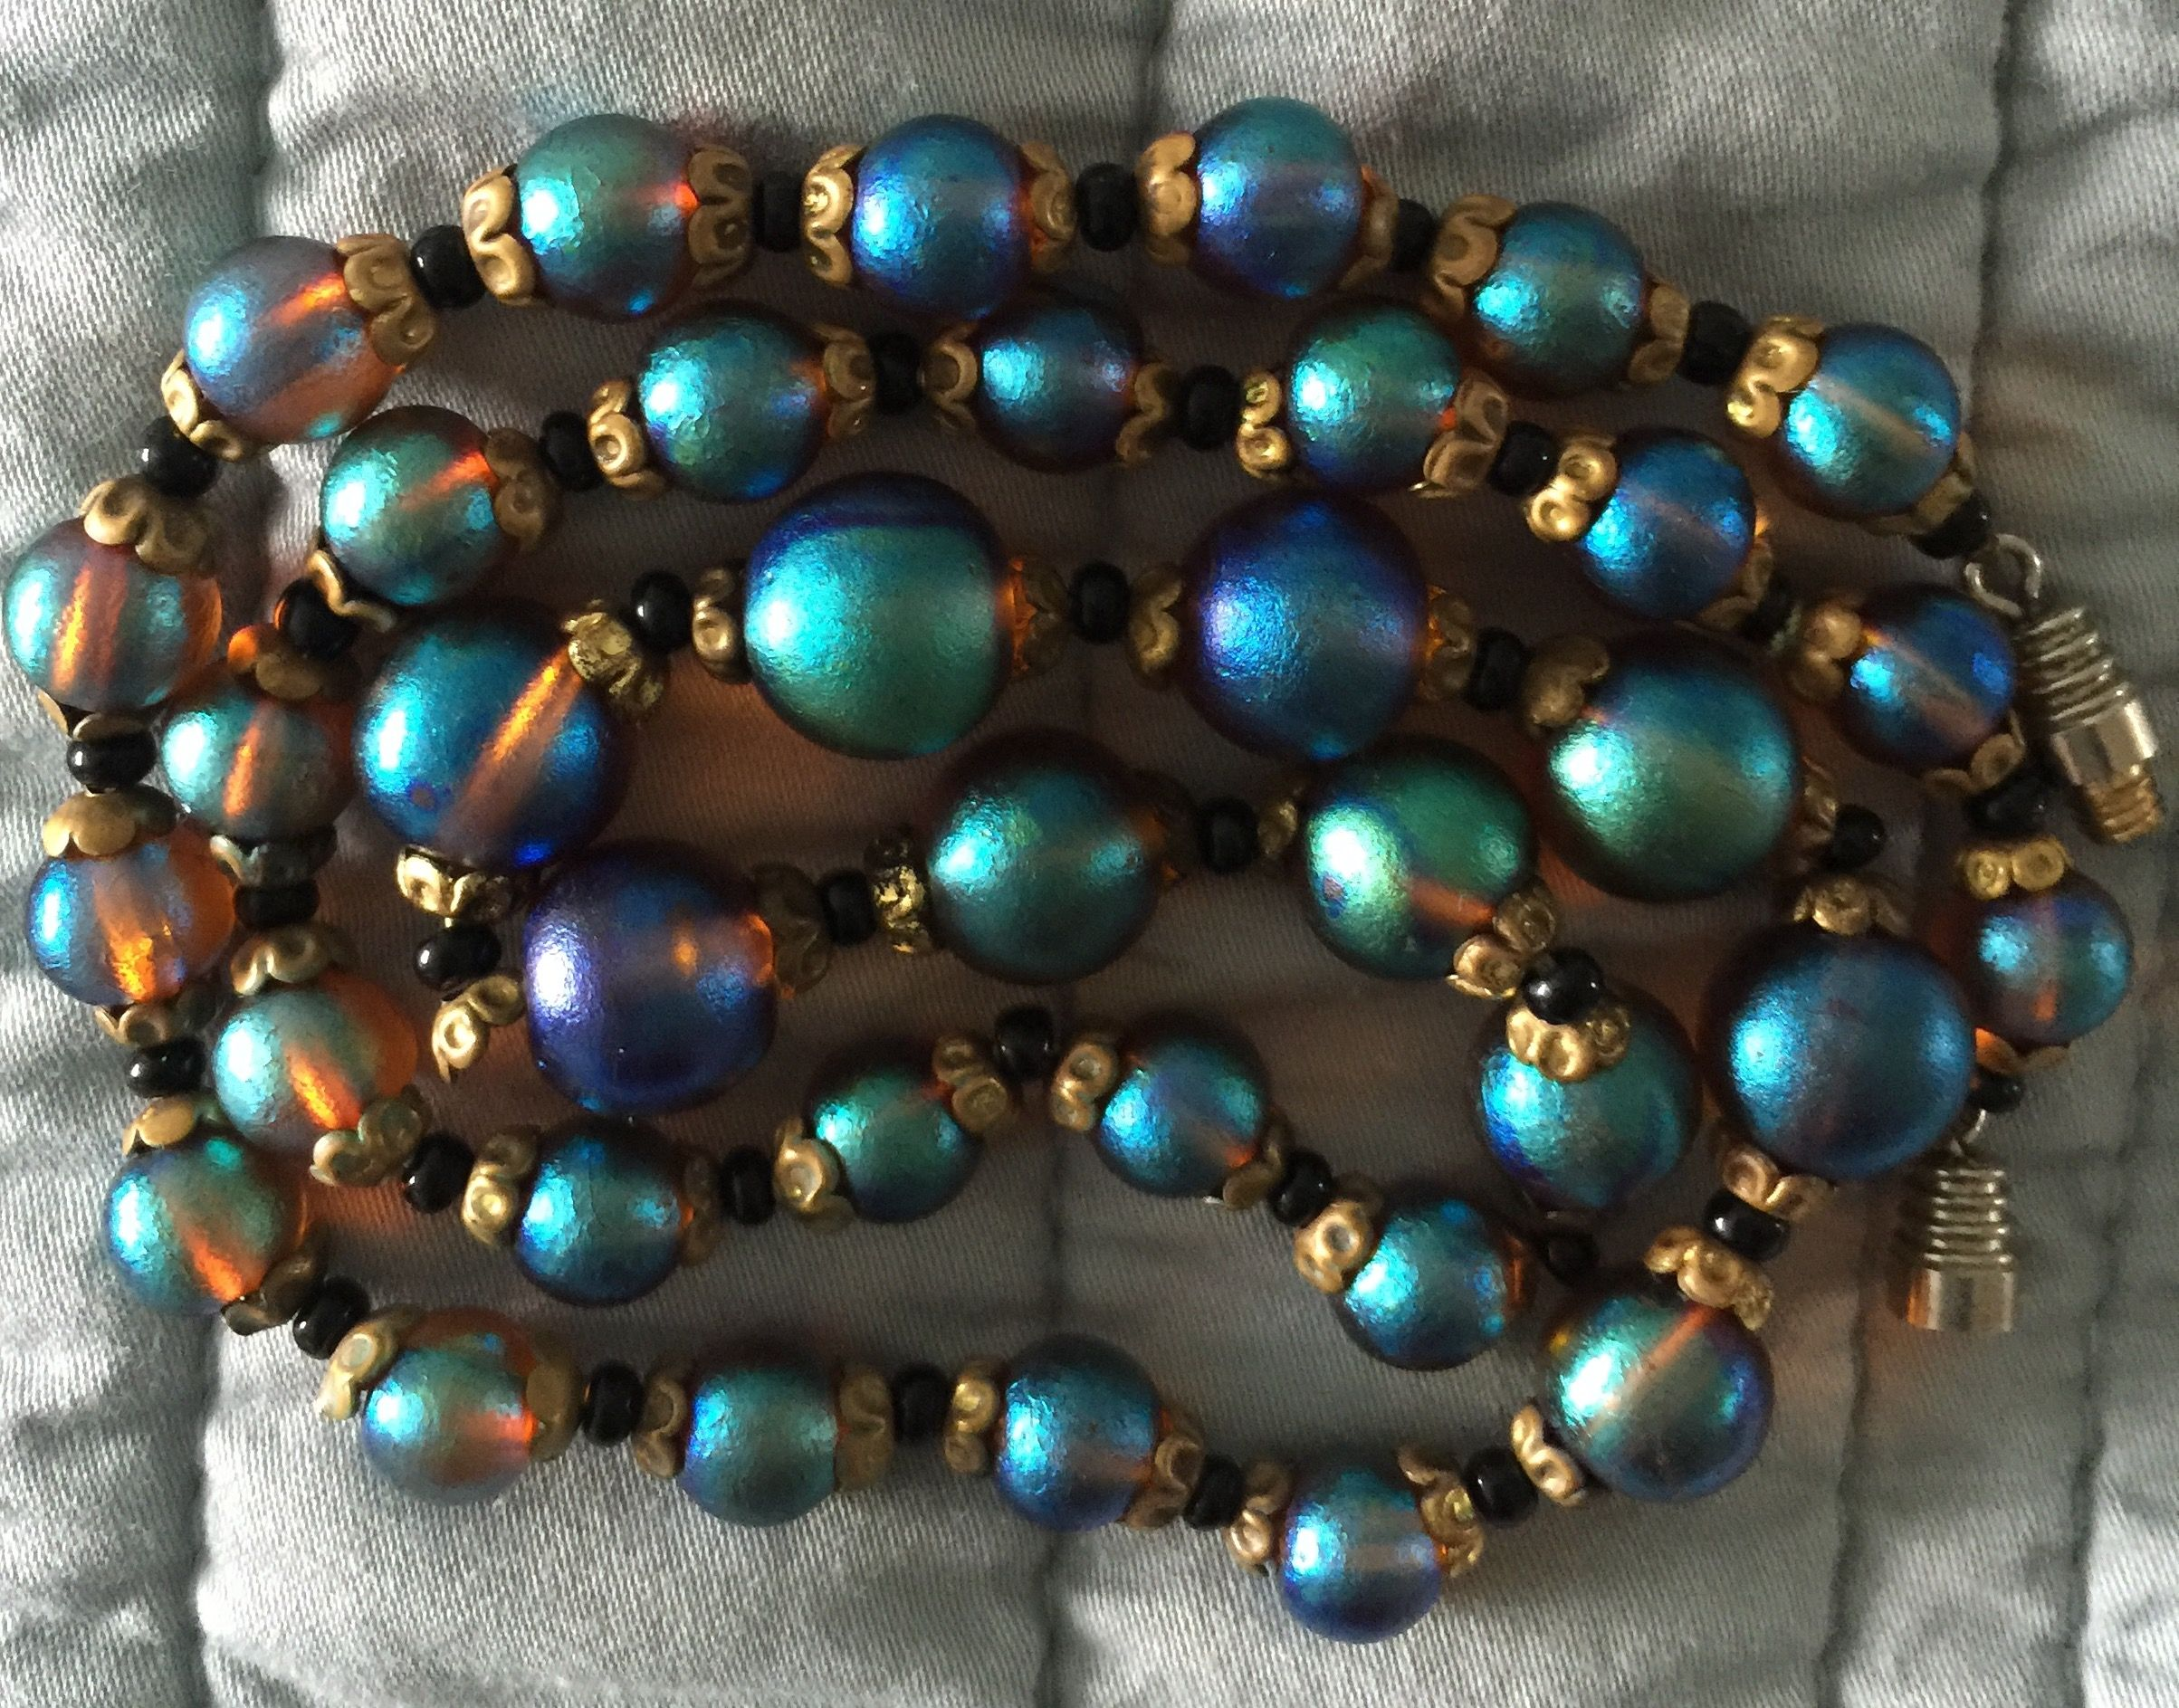 Handcrafted Necklace Colorful Beads and 3 Special Pieces of Beach Glass Measures 22 inches in Very Lovely Condition